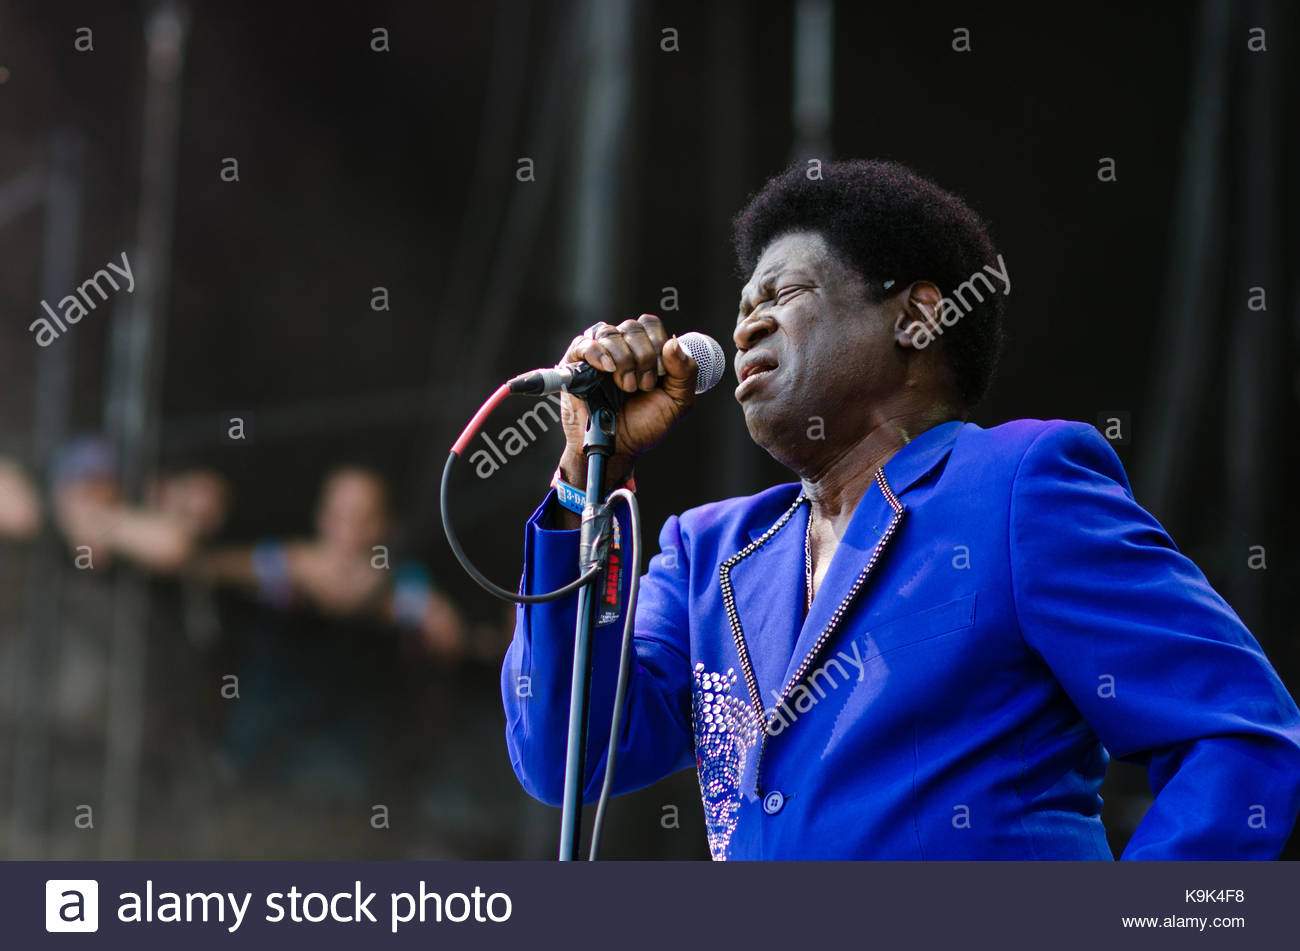 Chicago, USA. 3rd Aug, 2017. Charles Bradley performs at Lollapalooza in Chicago, IL on August 3, 2013. Credit: - Stock Image